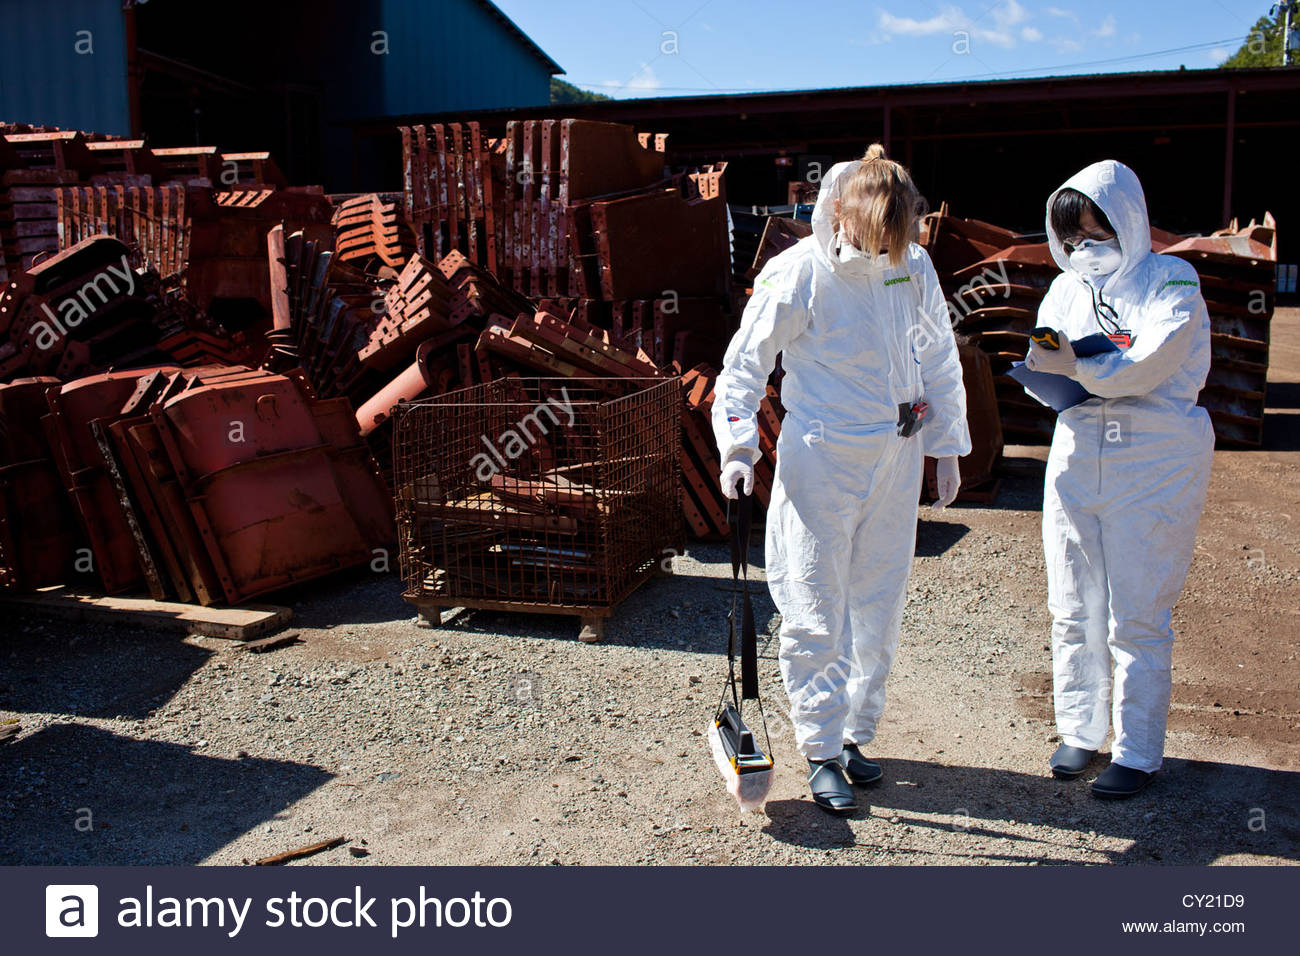 A Greenpeace radiation monitoring team checks contamination levels in Iitate, 30km from the Fukushima Daiichi nuclear - Stock Image